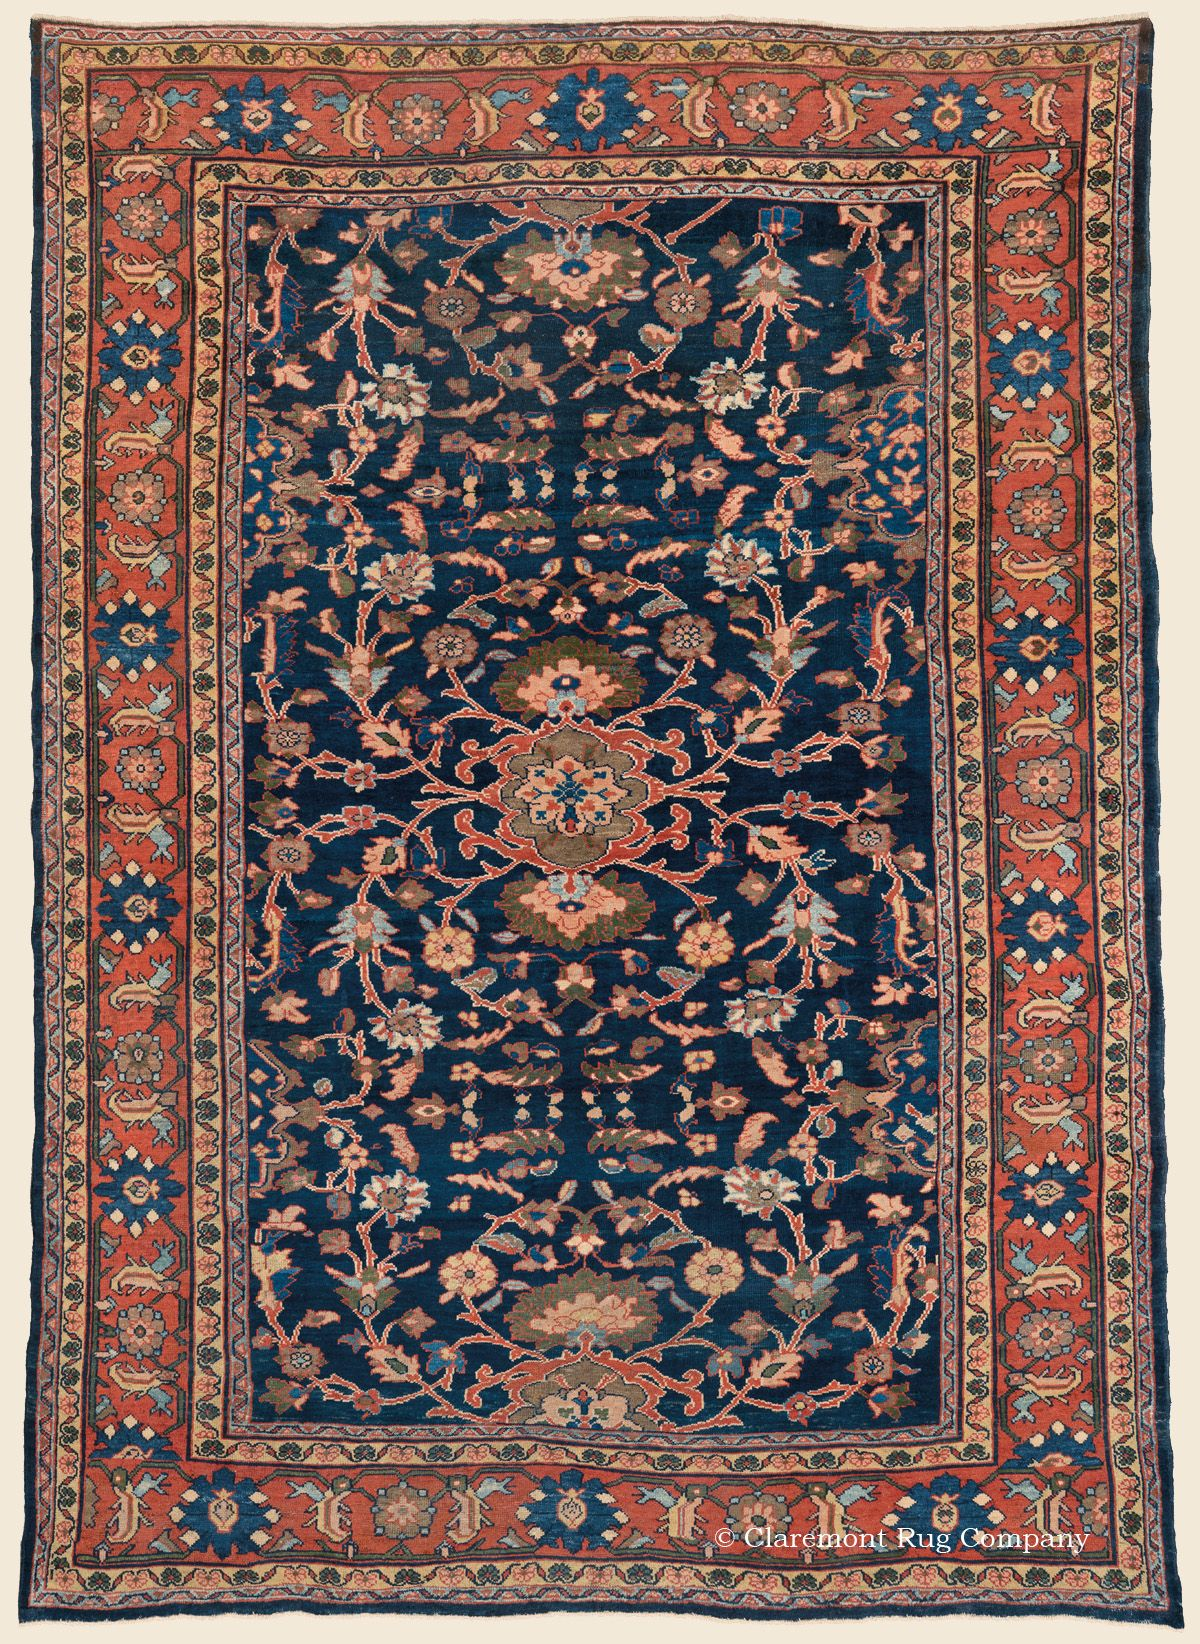 Mahal 8 10 X 12 3 Circa 1910 Price 16 000 West Central Persian Antique Rug Claremont Rug Compan Antique Persian Carpet Rugs On Carpet Antique Rugs